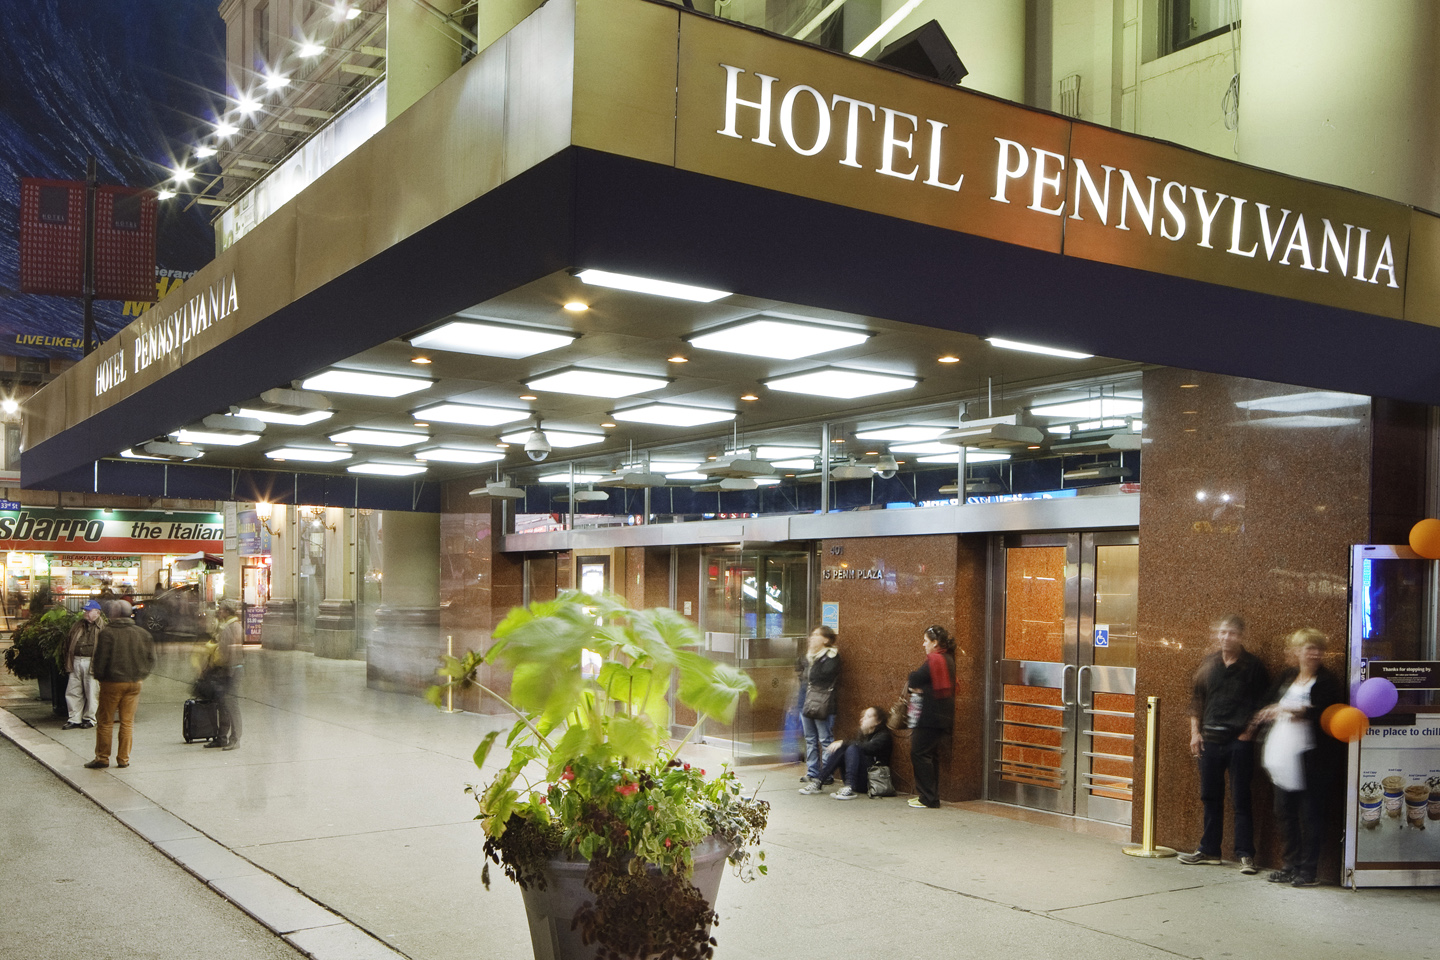 Hotel Pennsylvania Sports Special Options For Pooches New York City Dog Part 1